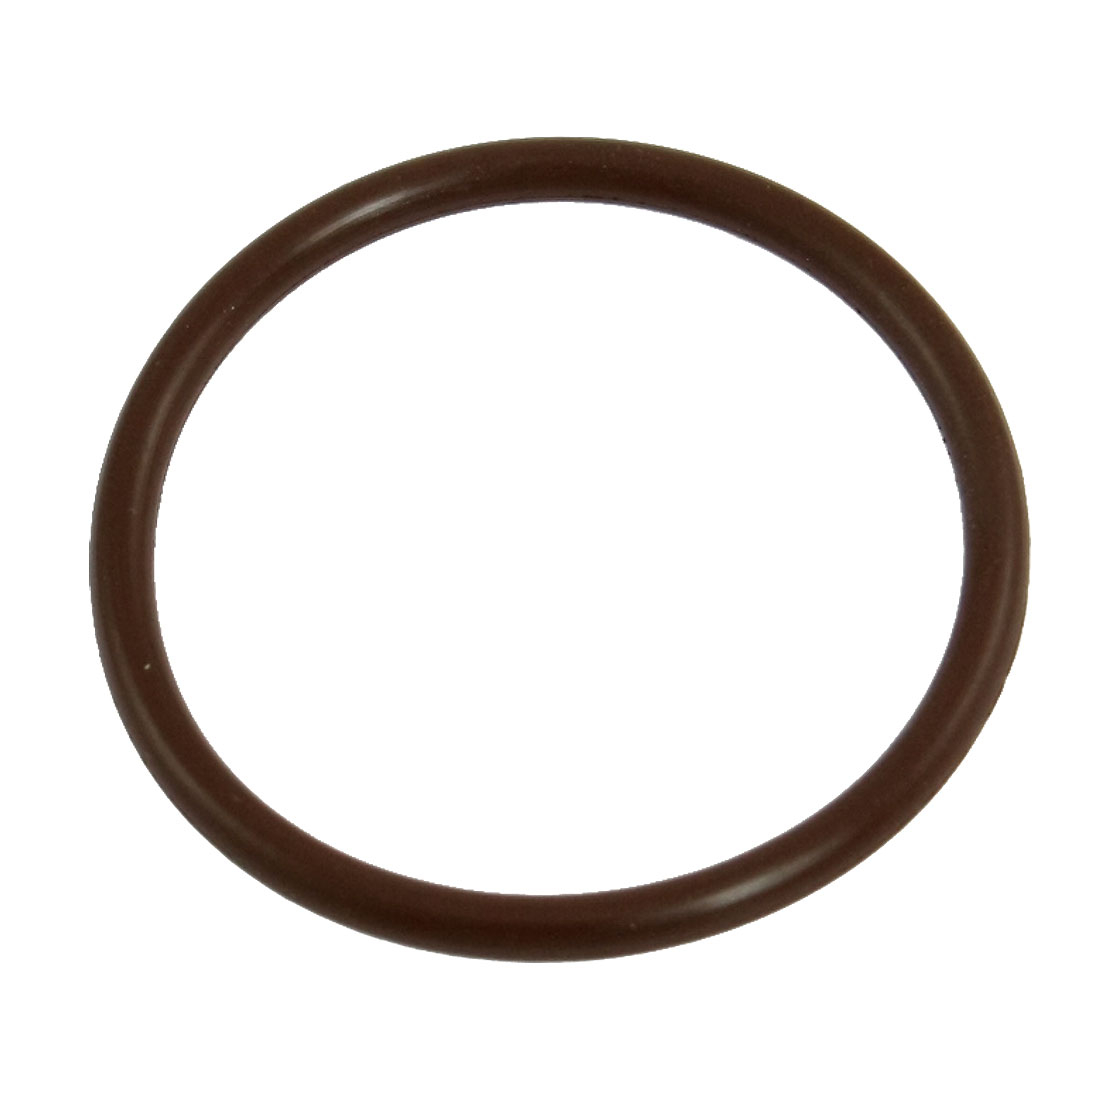 36mm x 42mm x 3mm Fluorine Rubber Sealing O Ring Gasket Washer Coffee Color